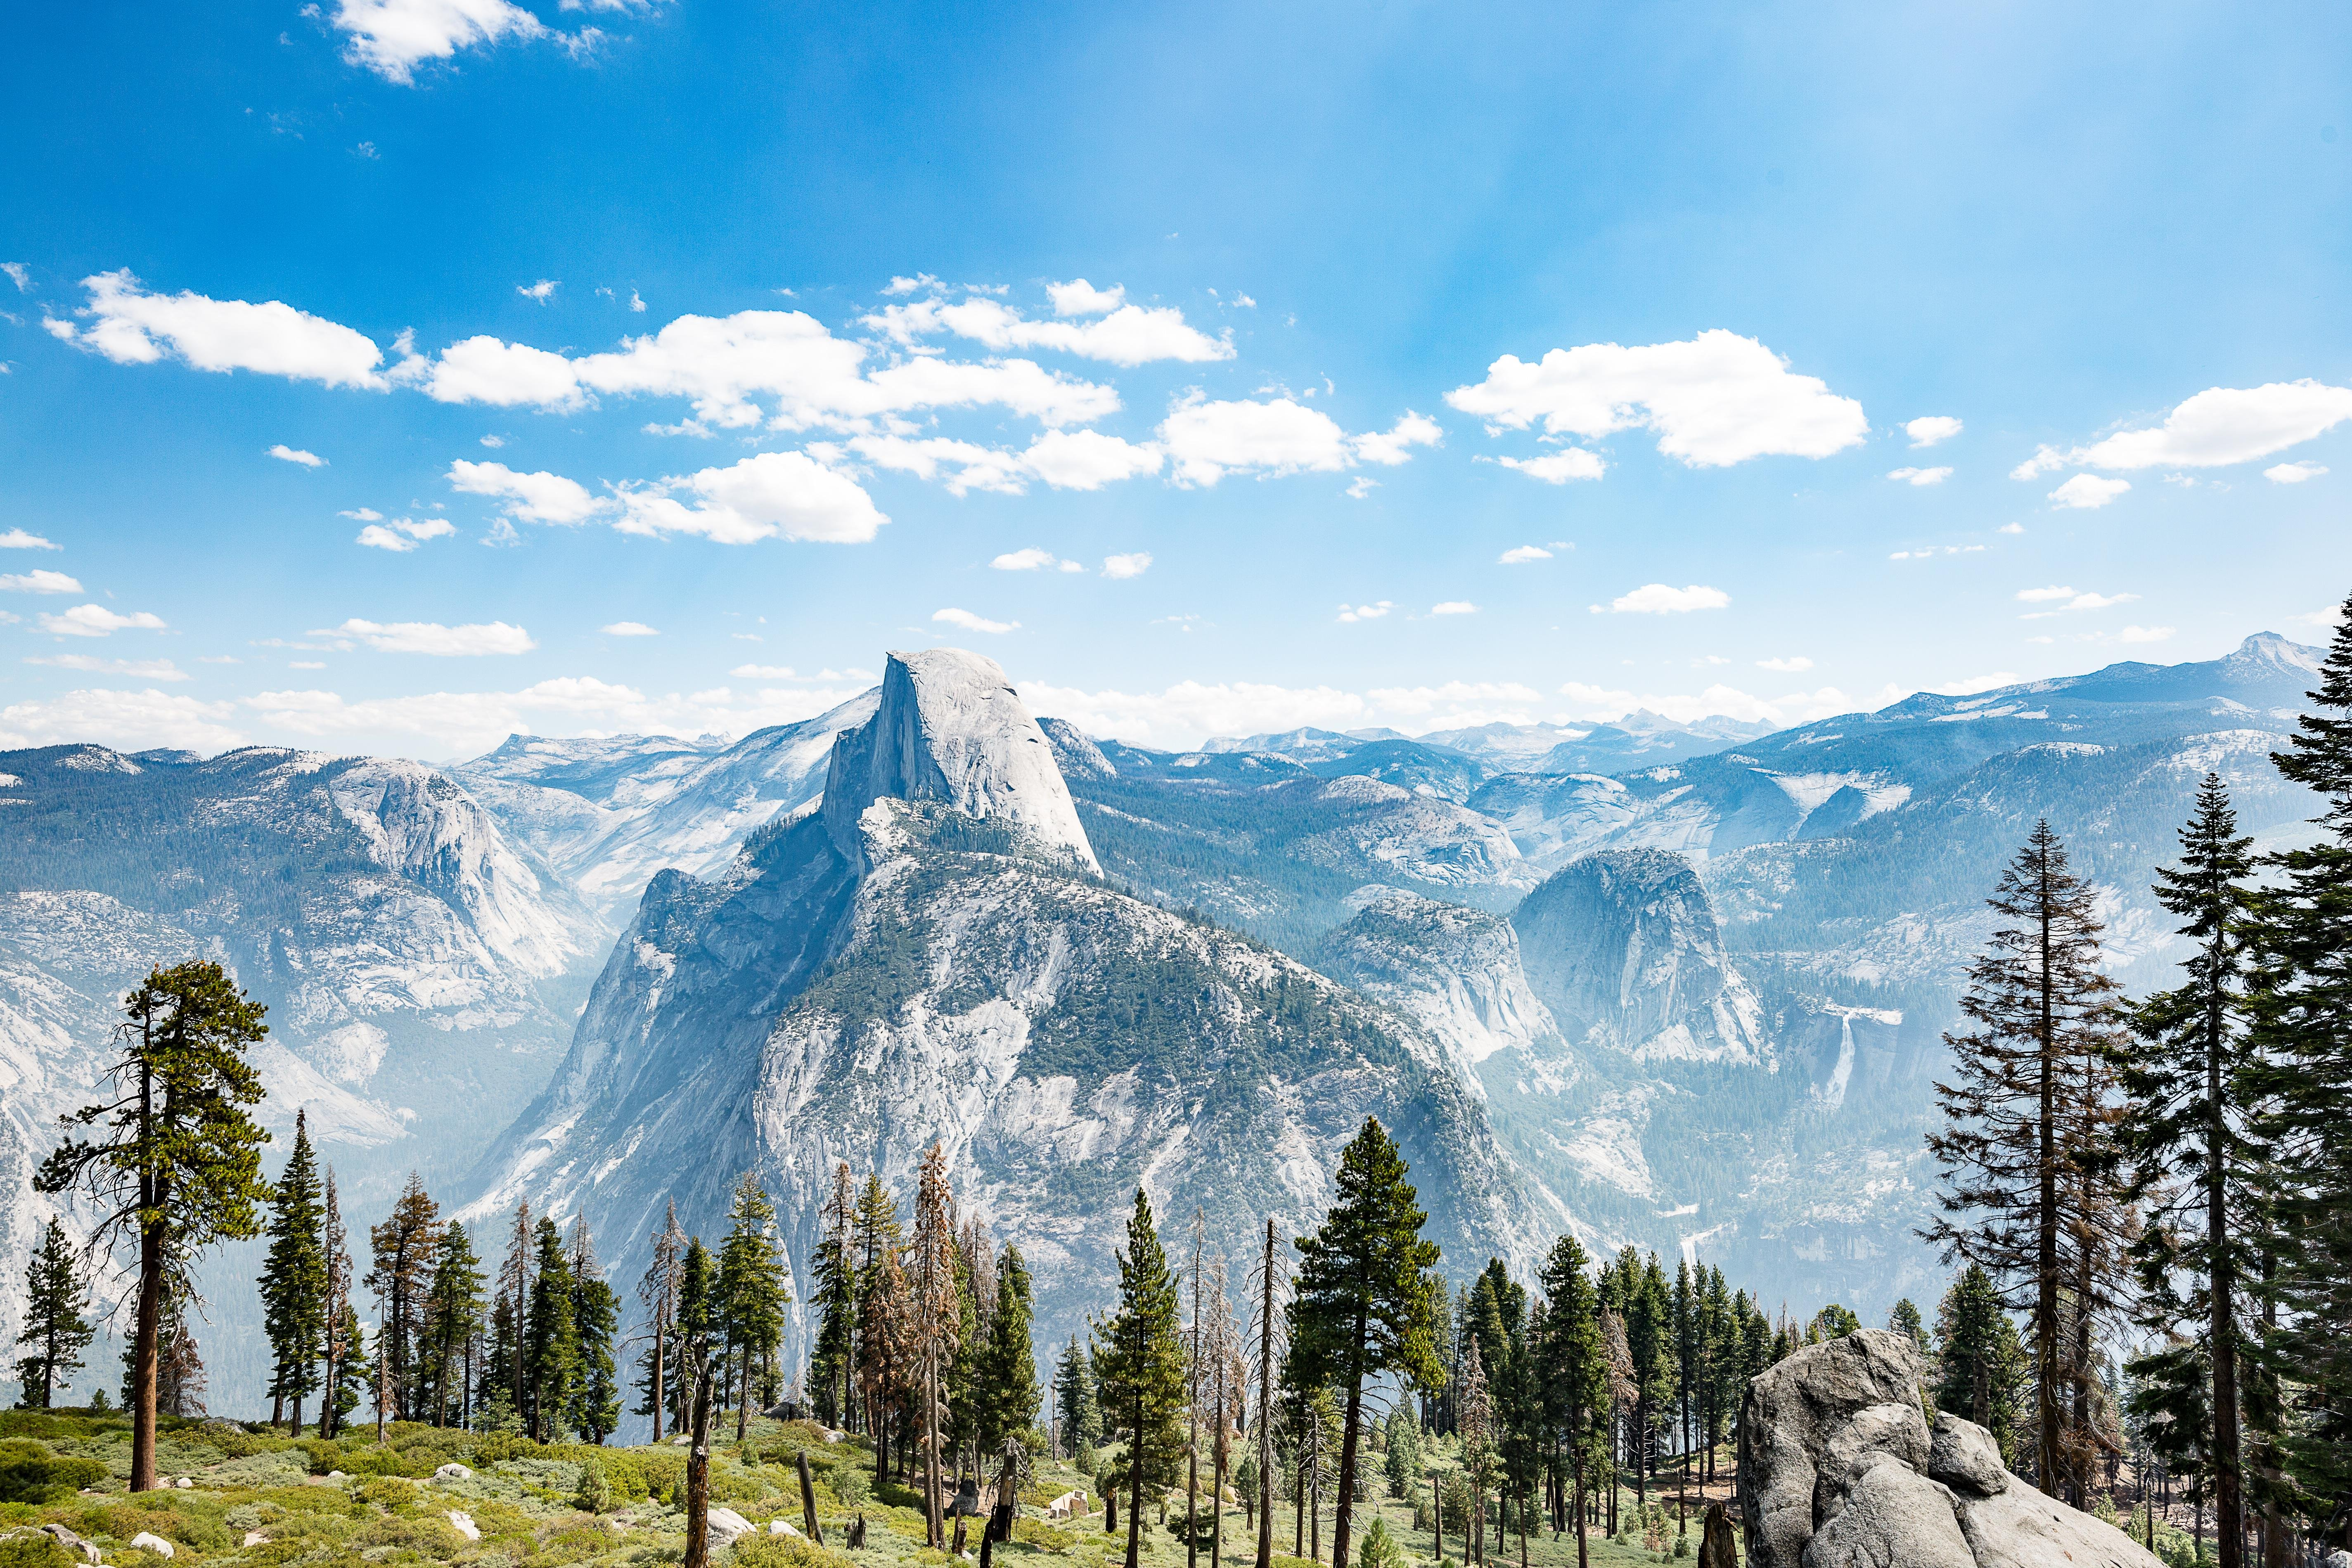 Yosemite 4K wallpapers for your desktop or mobile screen and 5697x3798